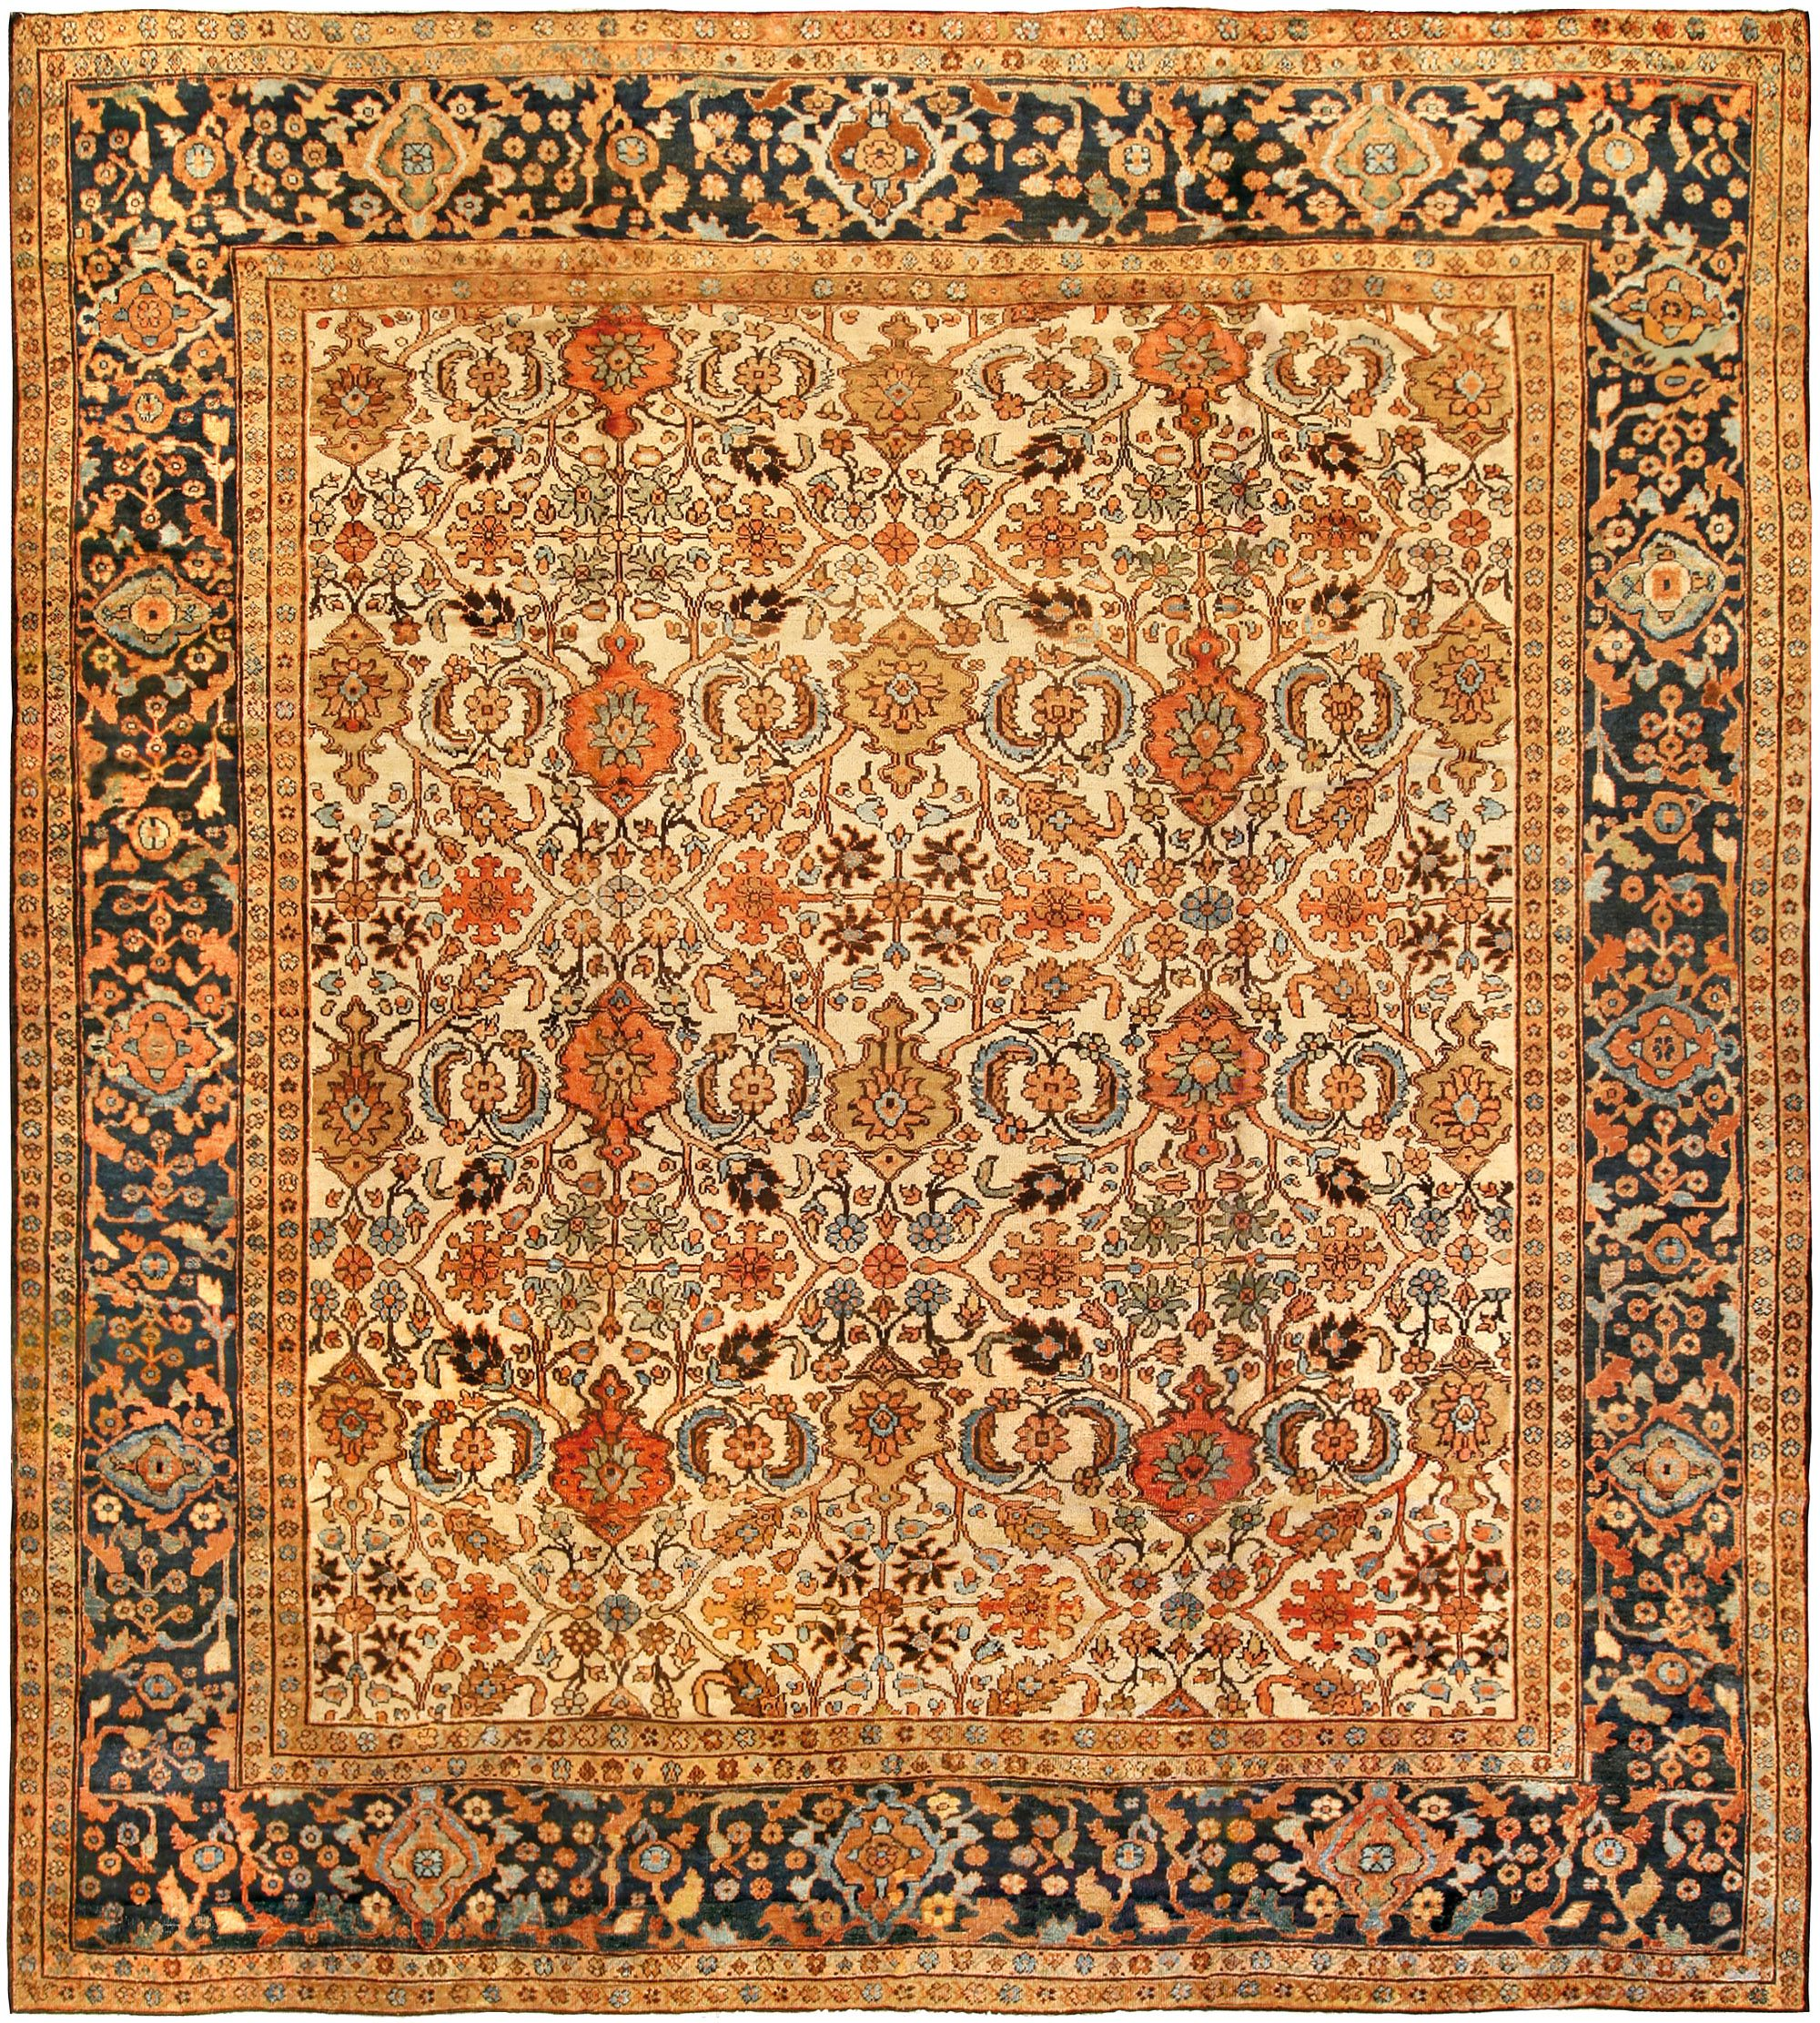 19th Century Persian Sultanabad Light Blue Salmon Beige Rug Bb1353 By Dlb Oriental Rug Patterns Persian Rug Designs Rugs On Carpet